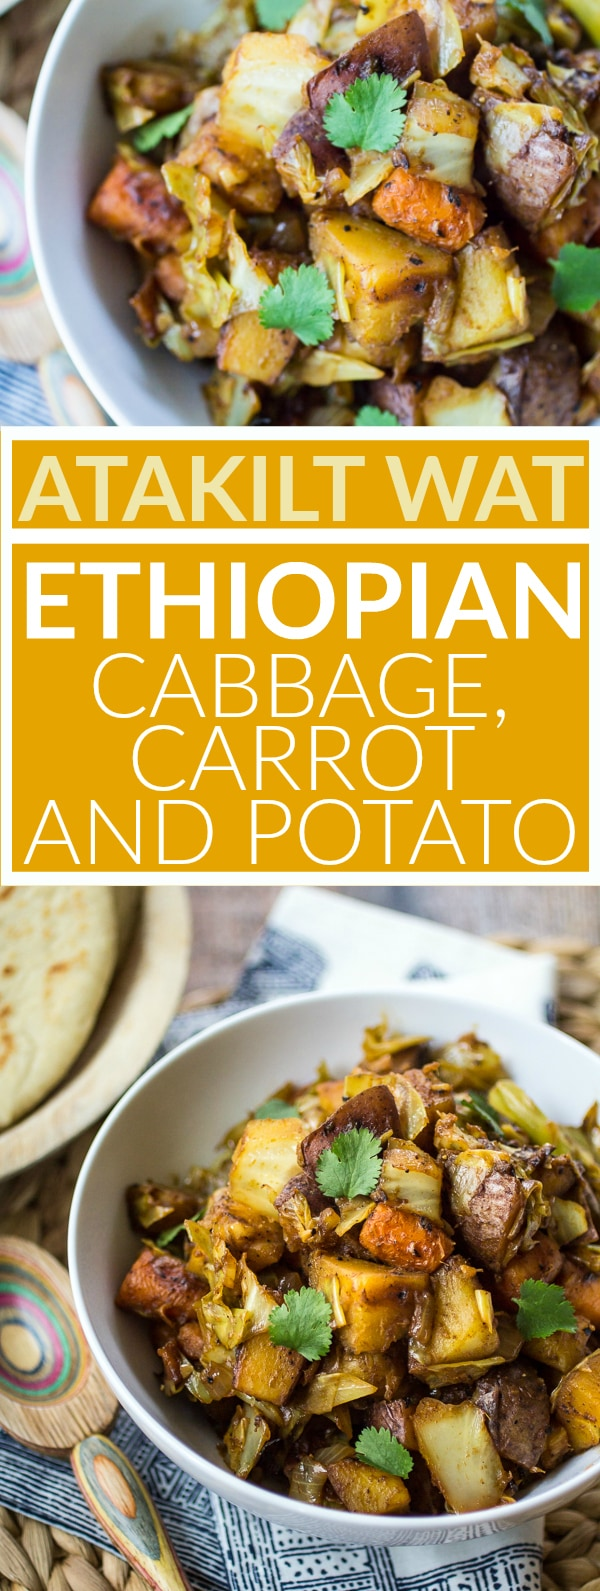 This easy Ethiopian Cabbage Carrot dish one of my favorite parts of any Ethiopian meal! Humble Atakilt Wat is made from cabbage, carrots, and potatoes spiced with fragrant Berbere seasoning. Serve it with simmered lentils and Ethiopian flatbread for an easy weeknight dinner!